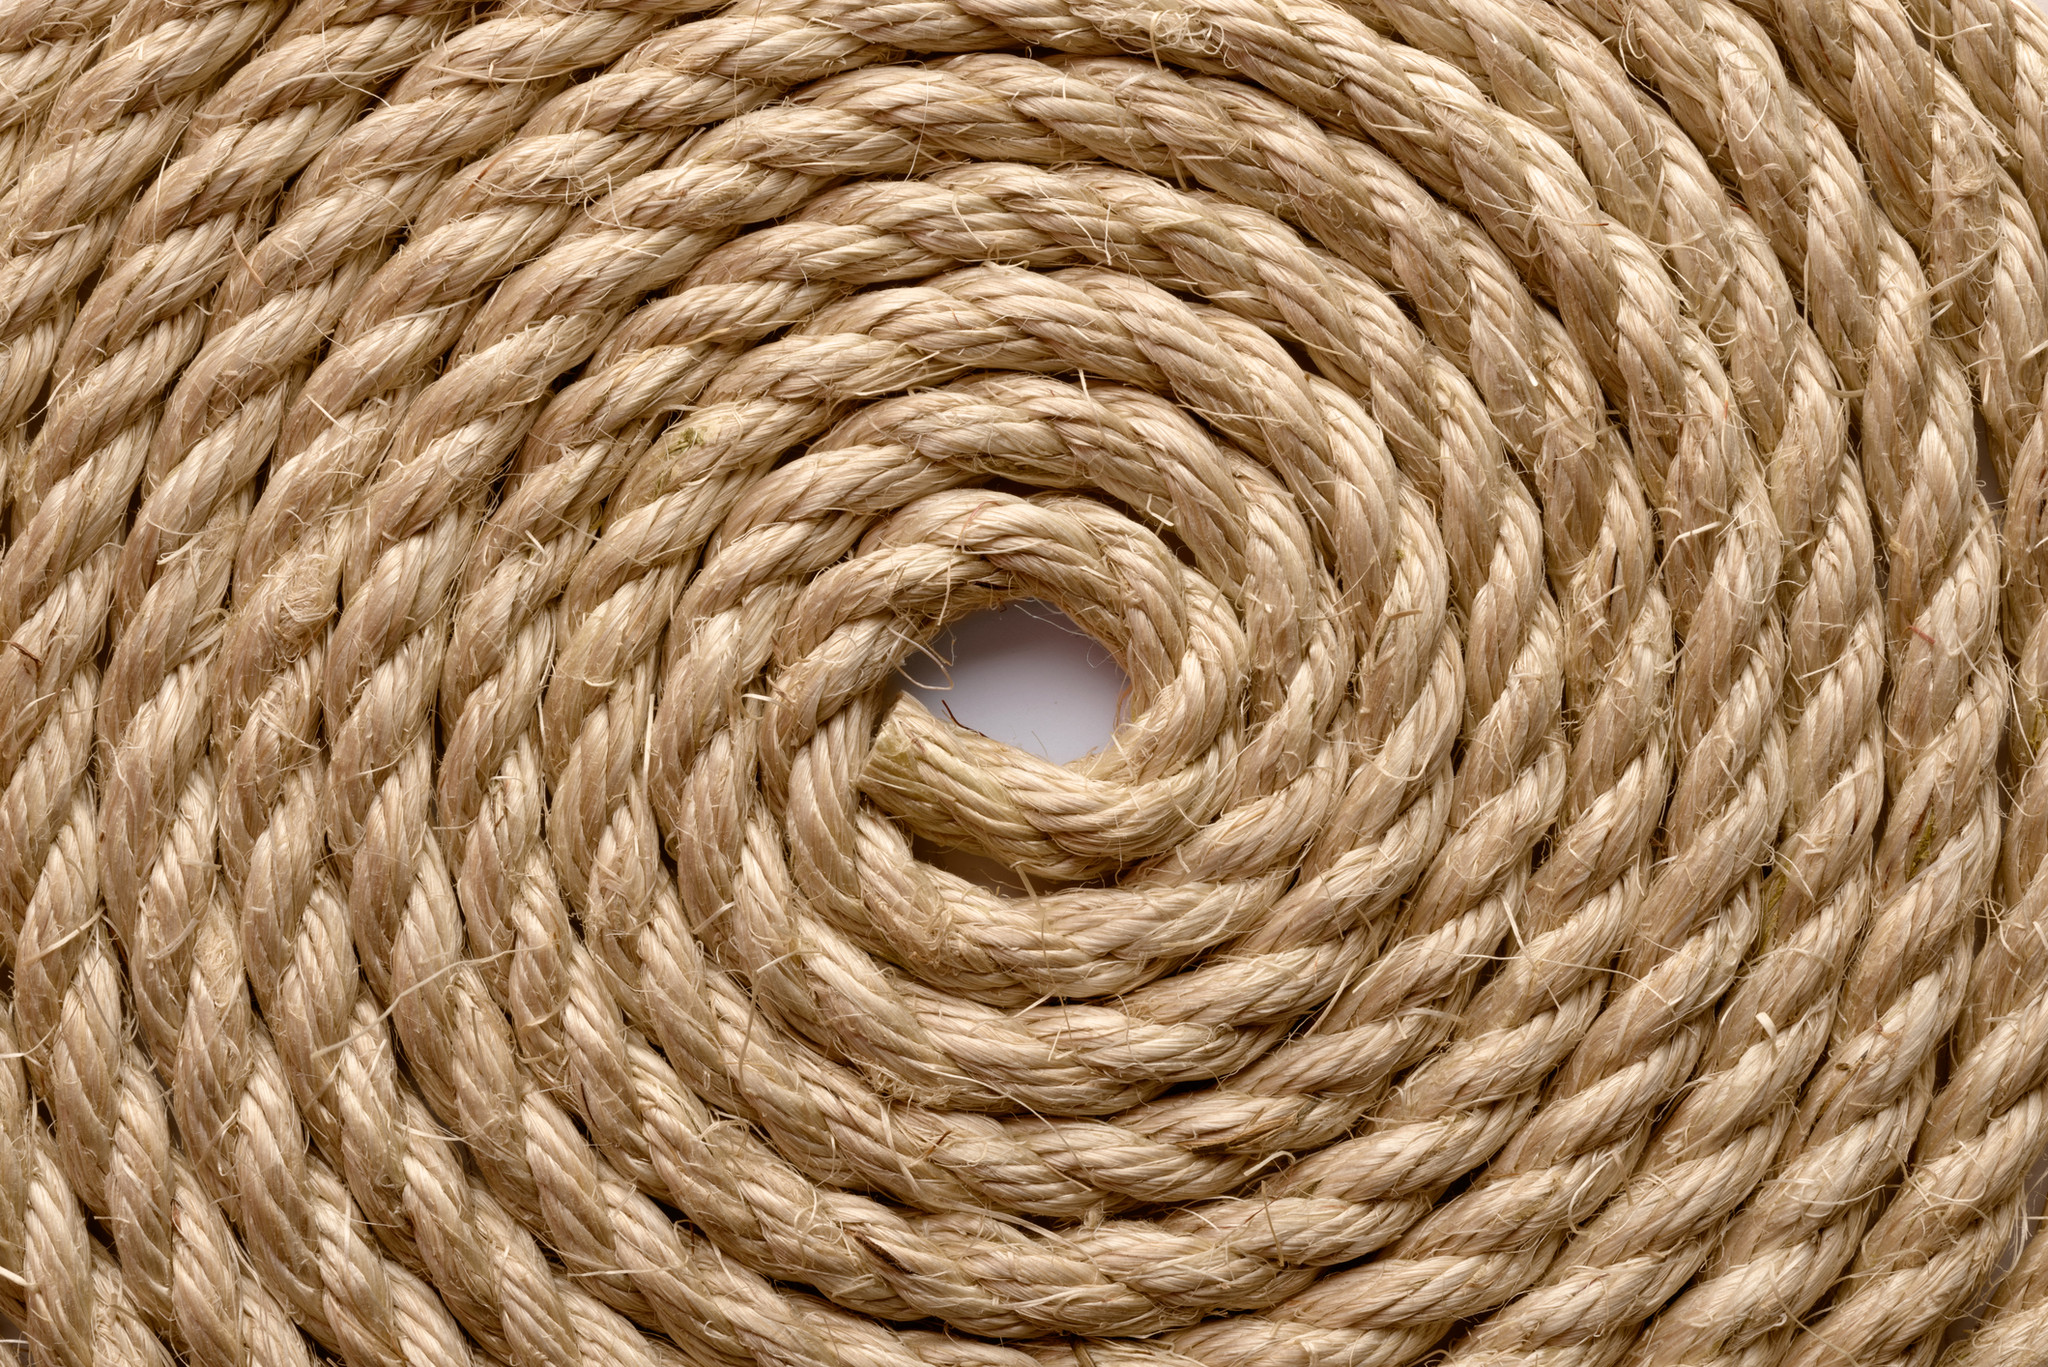 24mm decking rope